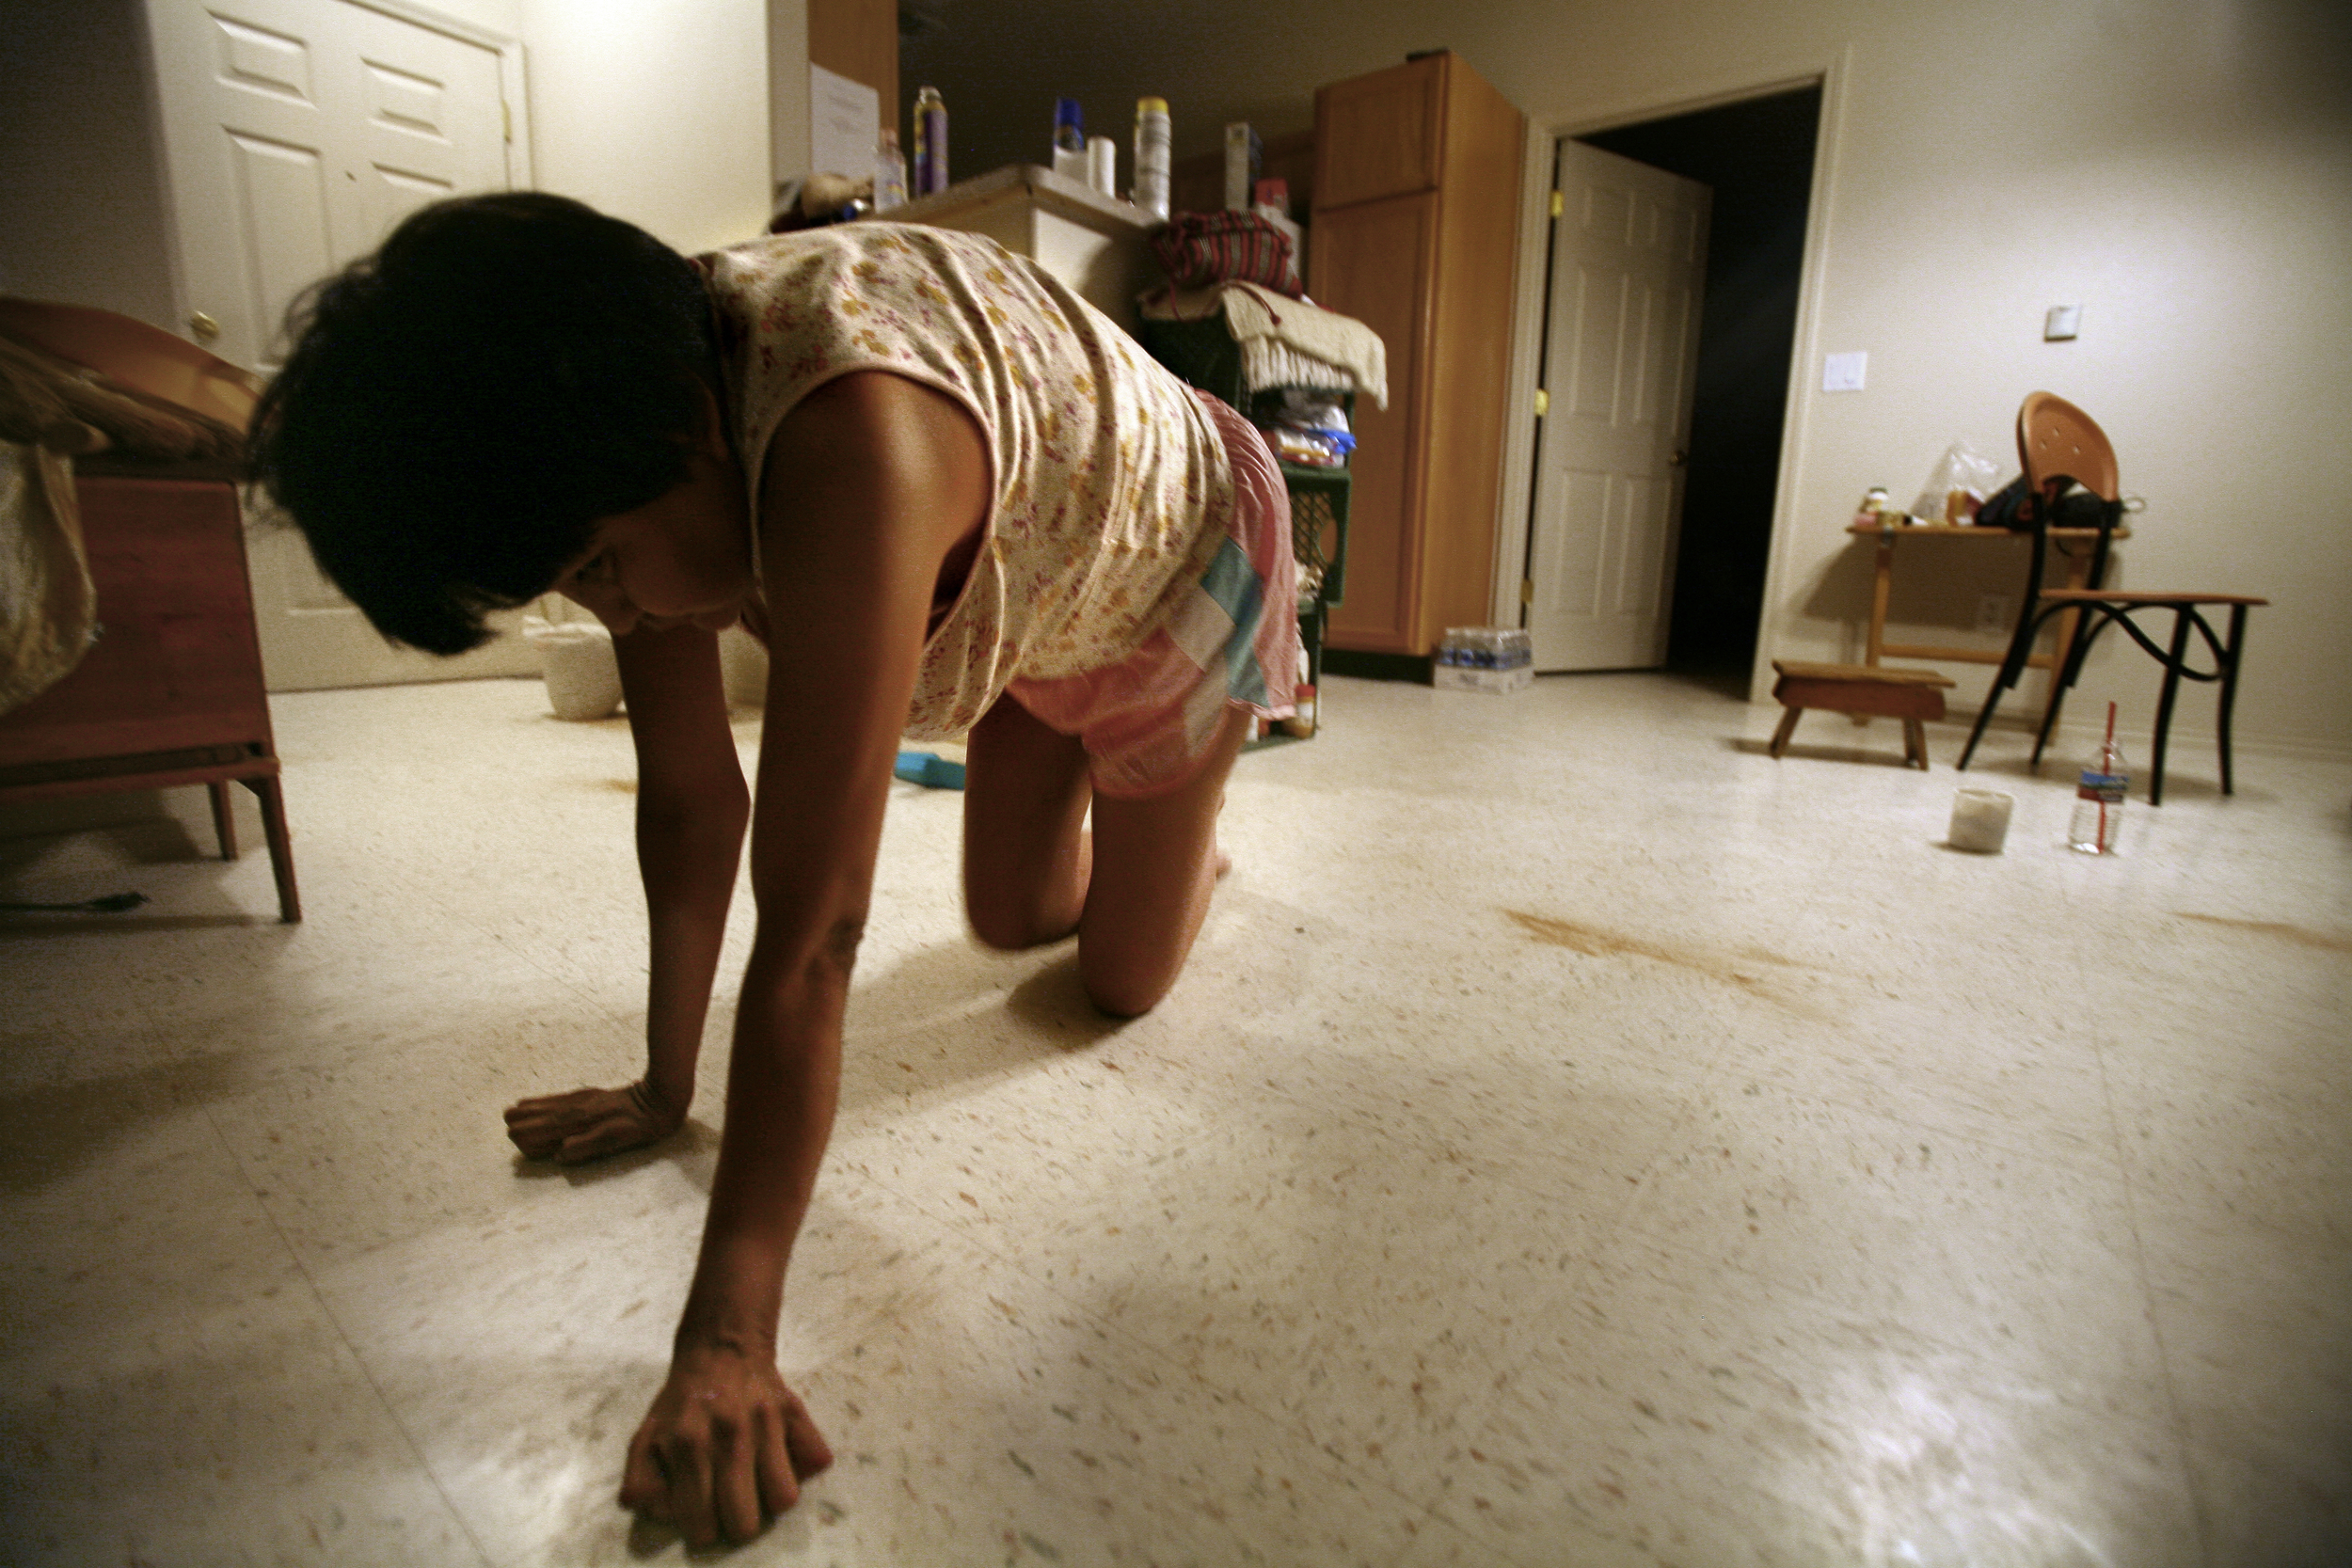 Laura Neztsosie, 36, is the oldest living person on the Indian Health Service's Navajo neuropathy registry. As the illness progresses, she loses more abilities. Her mother drank water contaminated by uranium when she was pregnant with Laura. ©Gail Fisher Los Angeles Times